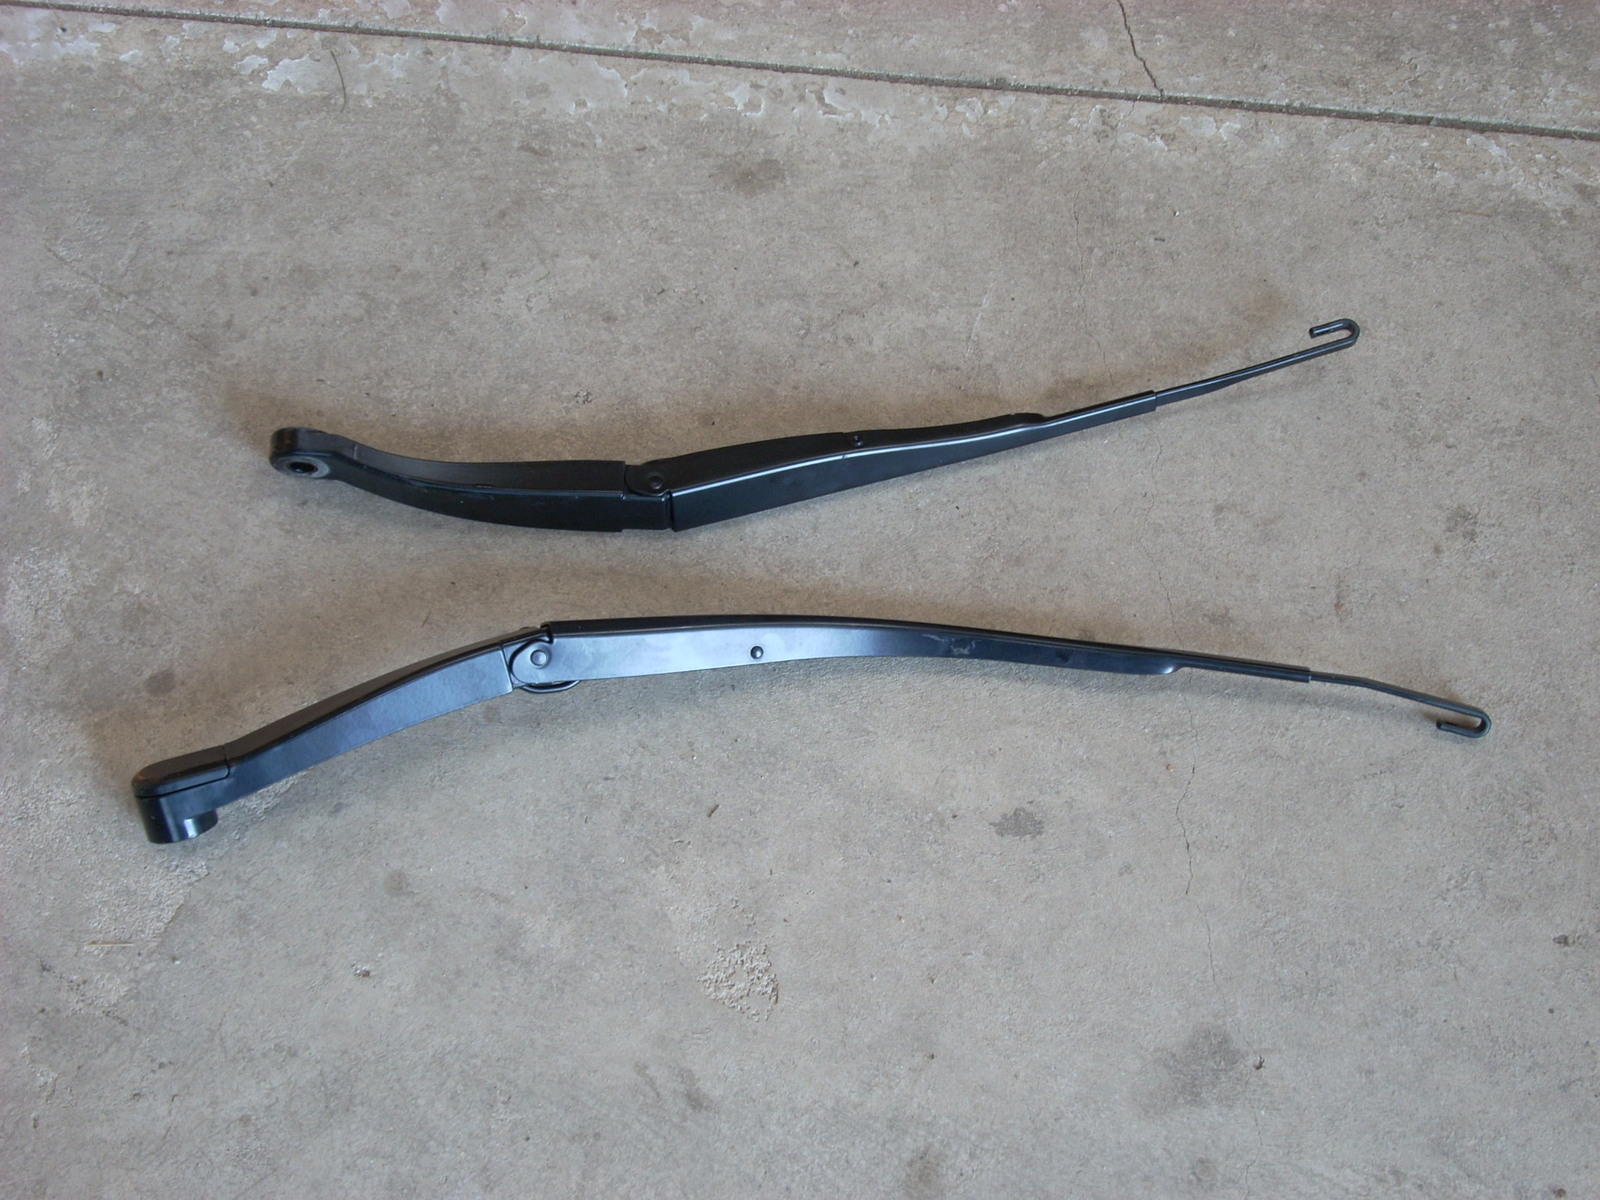 2014 ACURA TSX WINDSHIELD WIPER ARMS